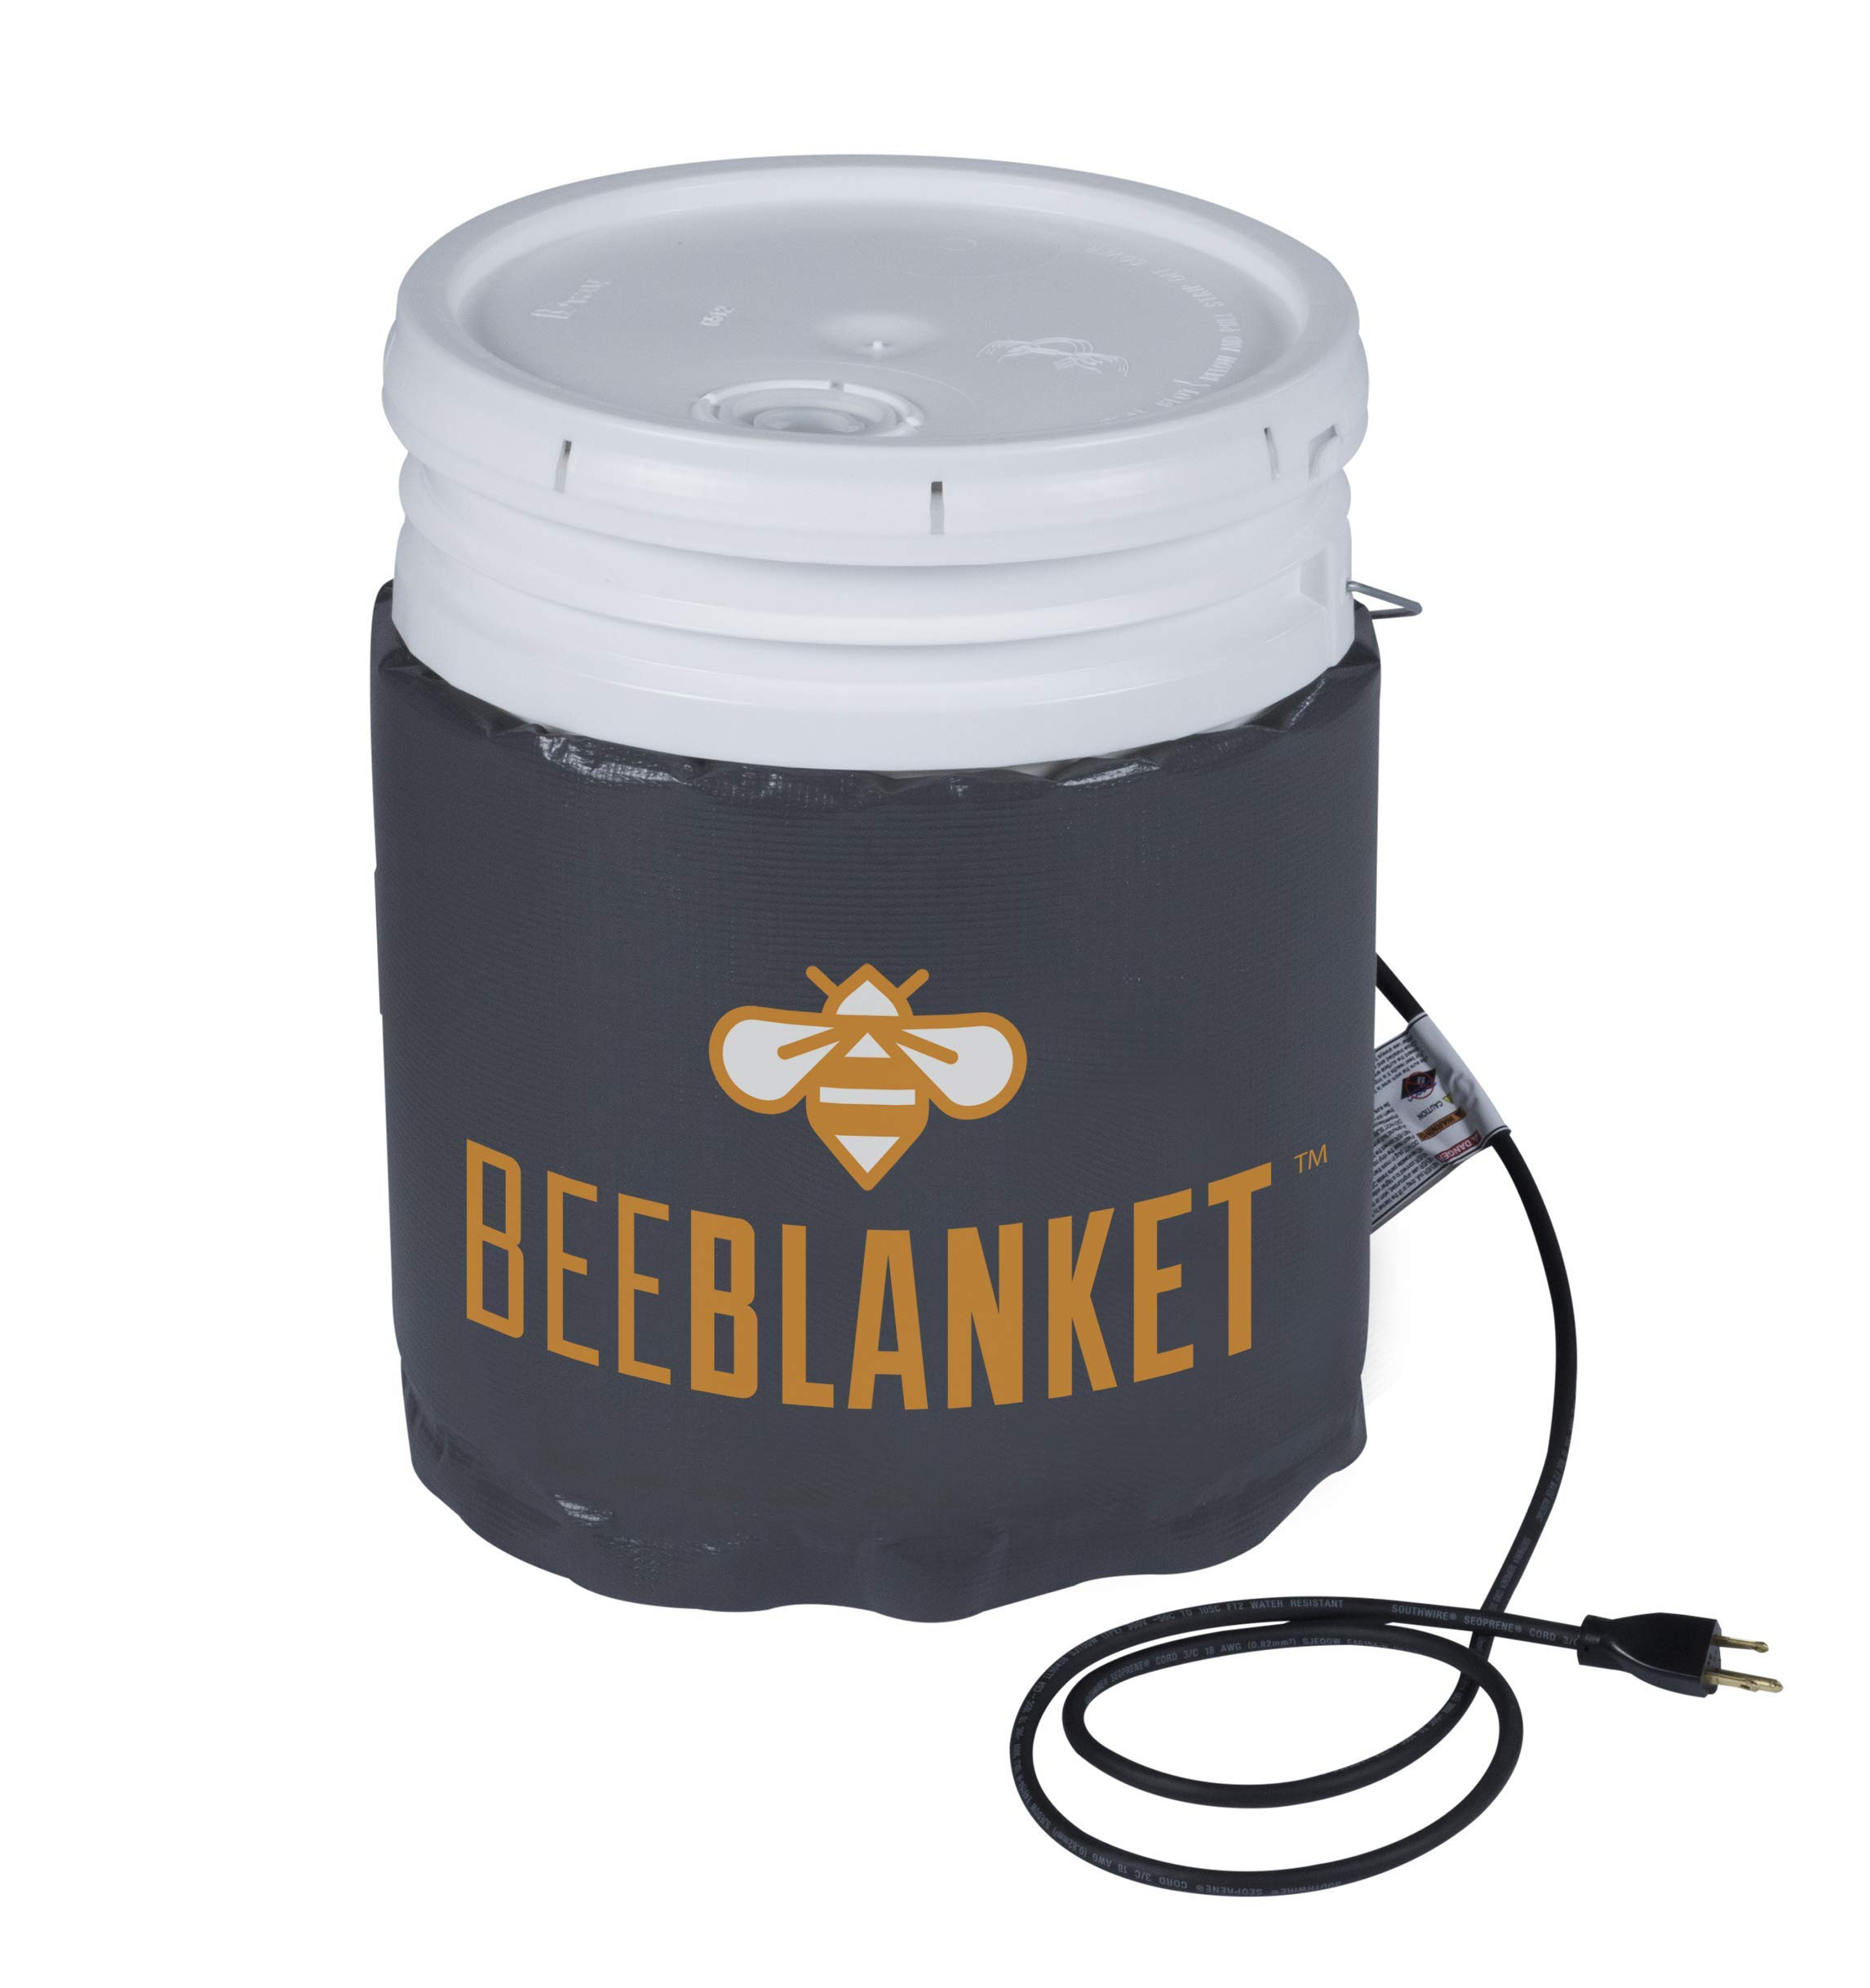 Powerblanket BB05-240V Industrial Grade D-12 Vinyl Shell Bee Blanket 5 gal Insulated Honey Pail Heater with 110 Degree F Fixed Internal Thermostat, 240V